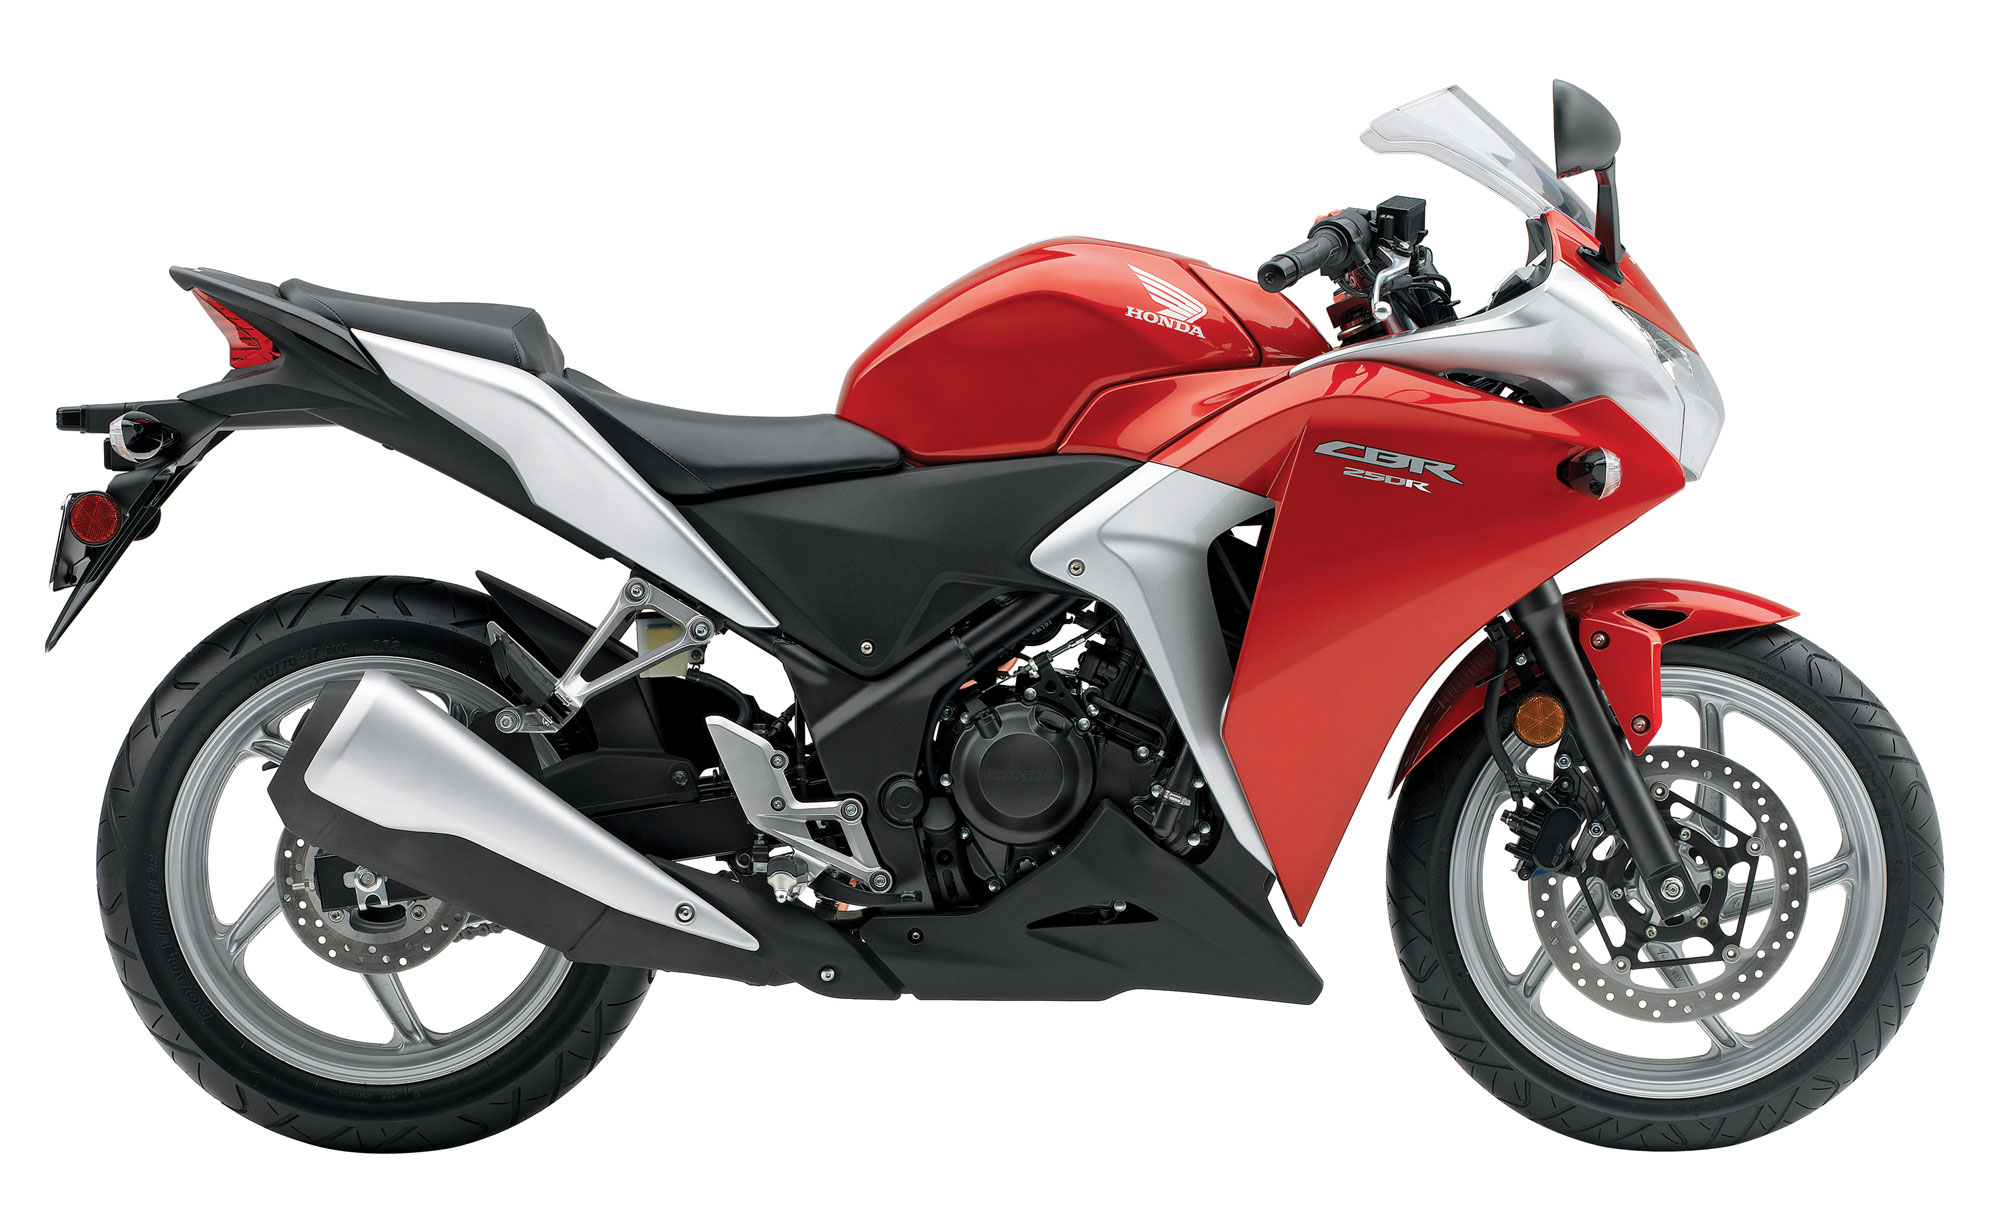 2012 Honda CB250R Review